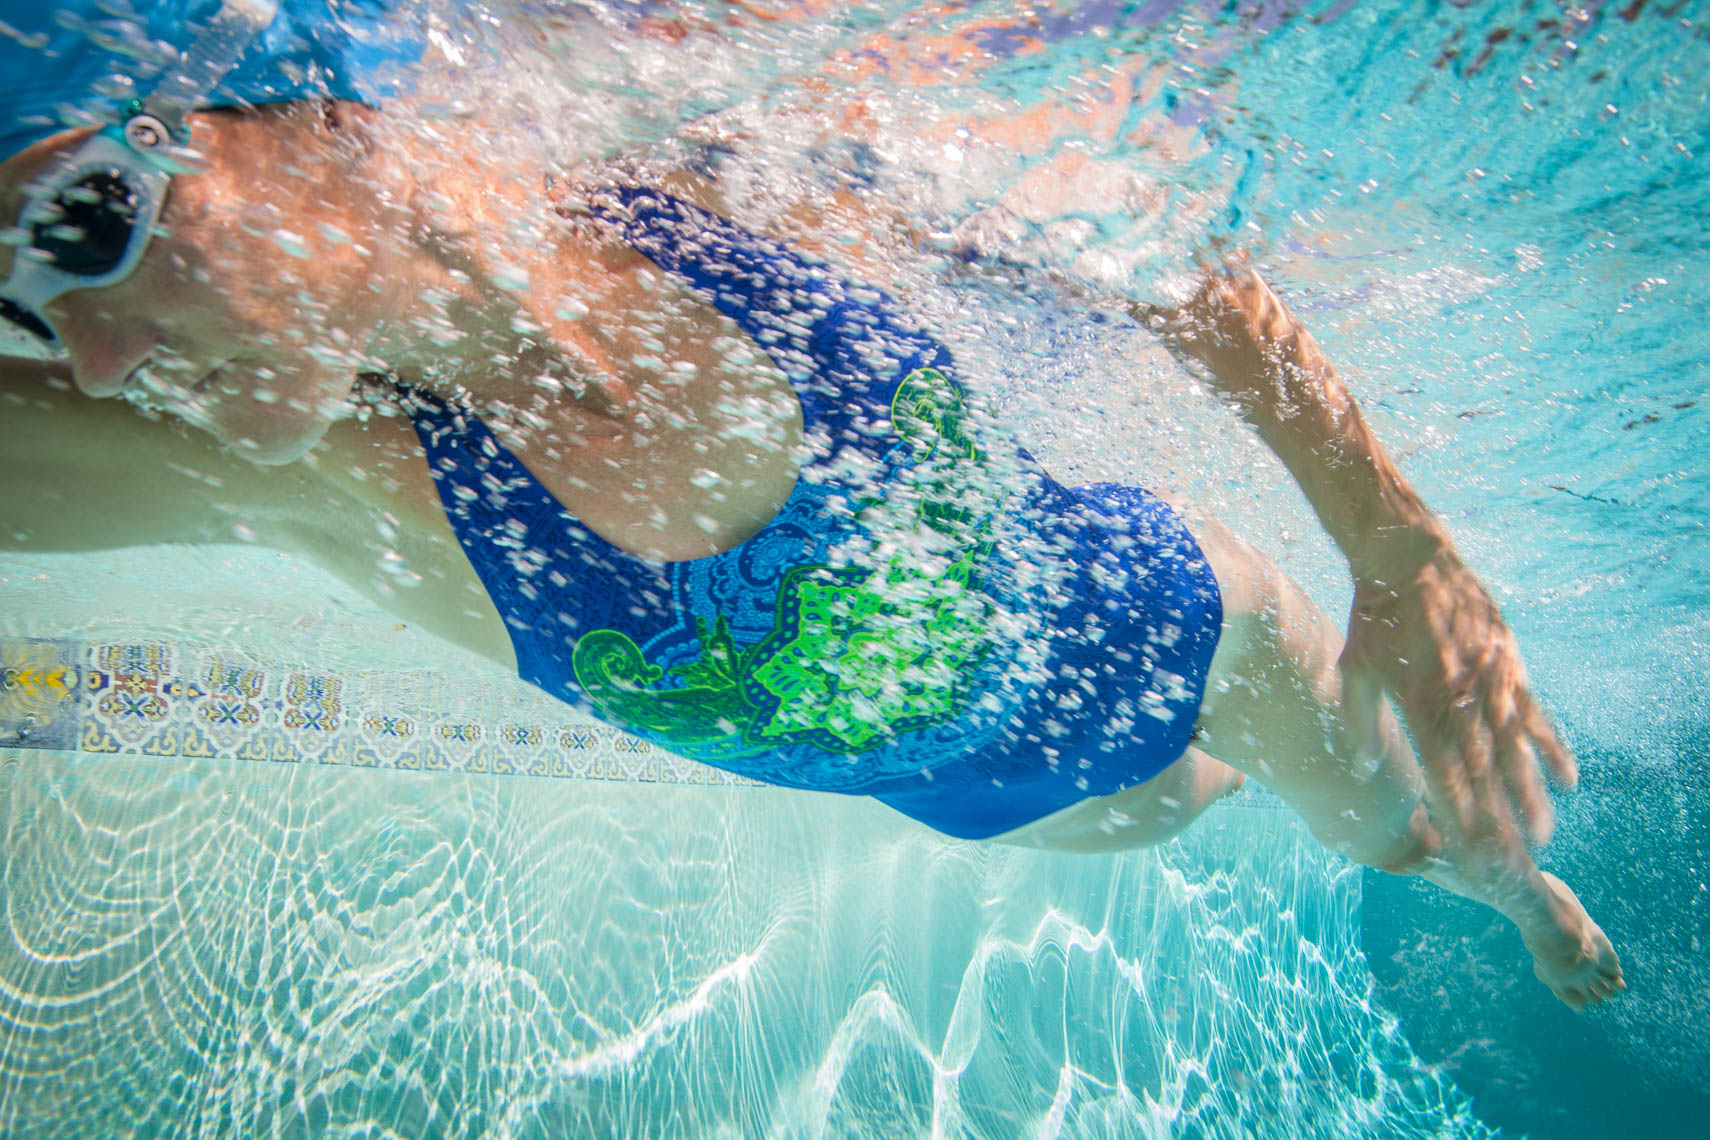 Underwater Photograph of Competitive Swimmer